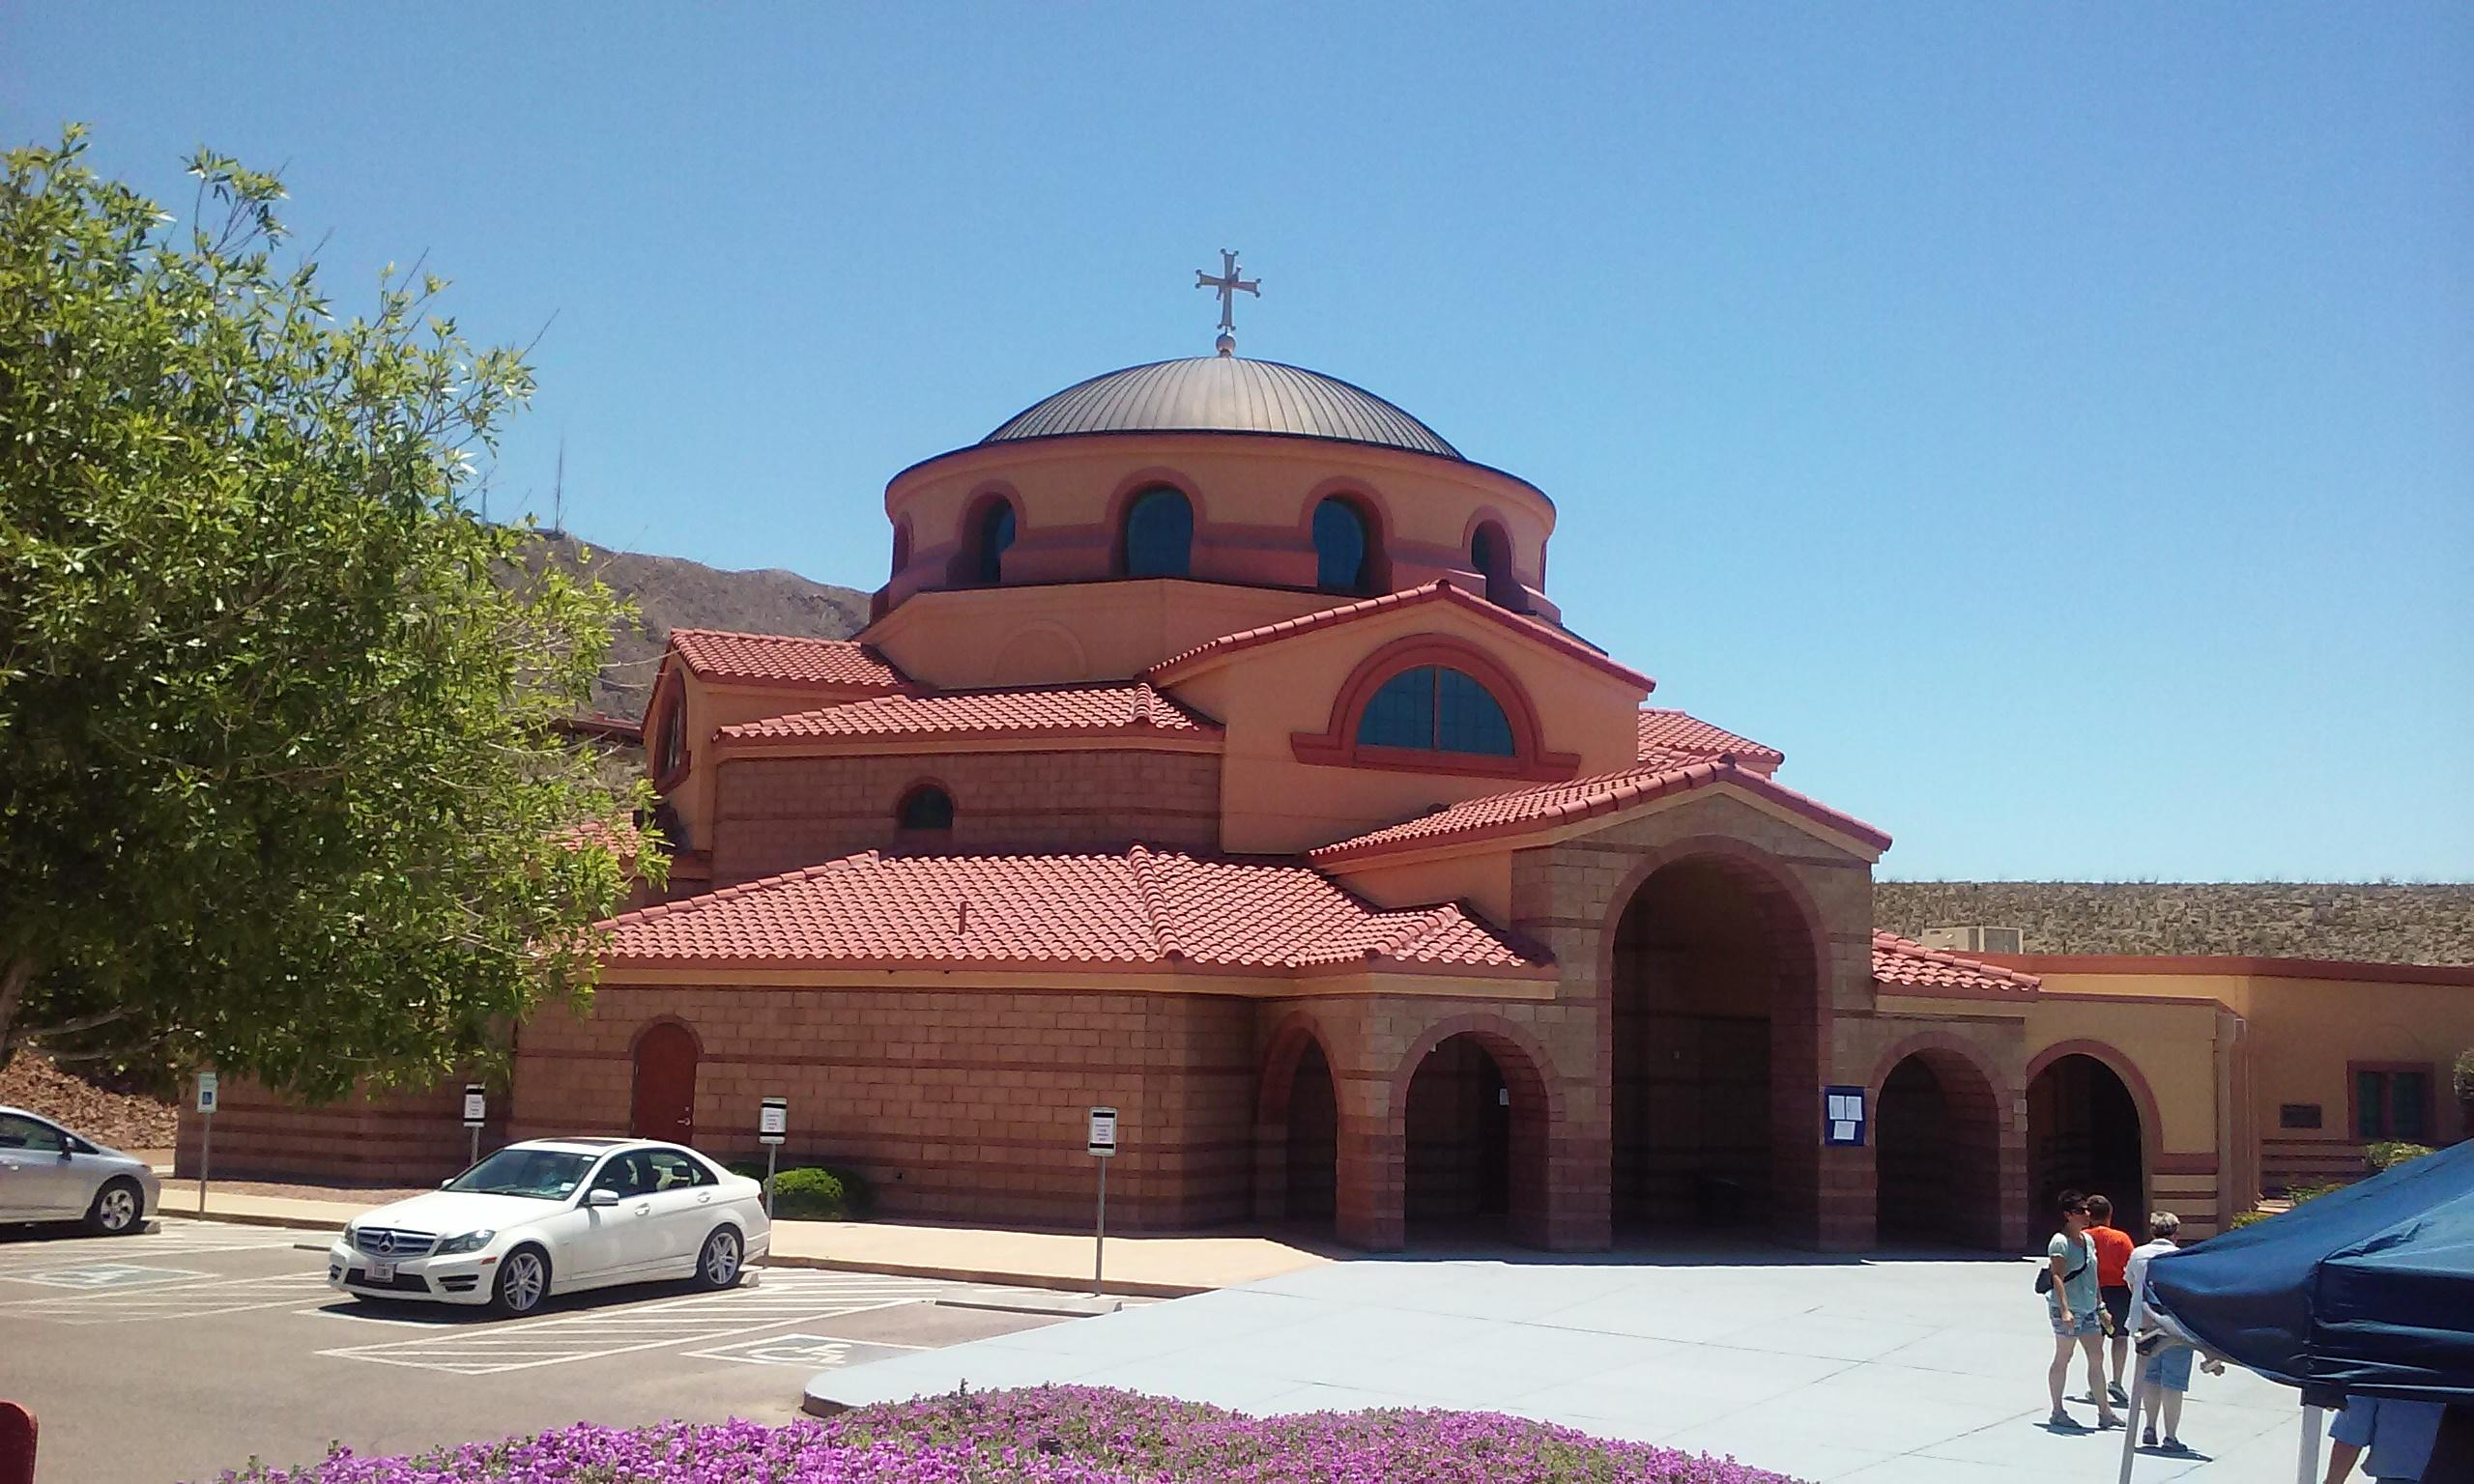 Saint George Antiochian Orthodox Christian Church